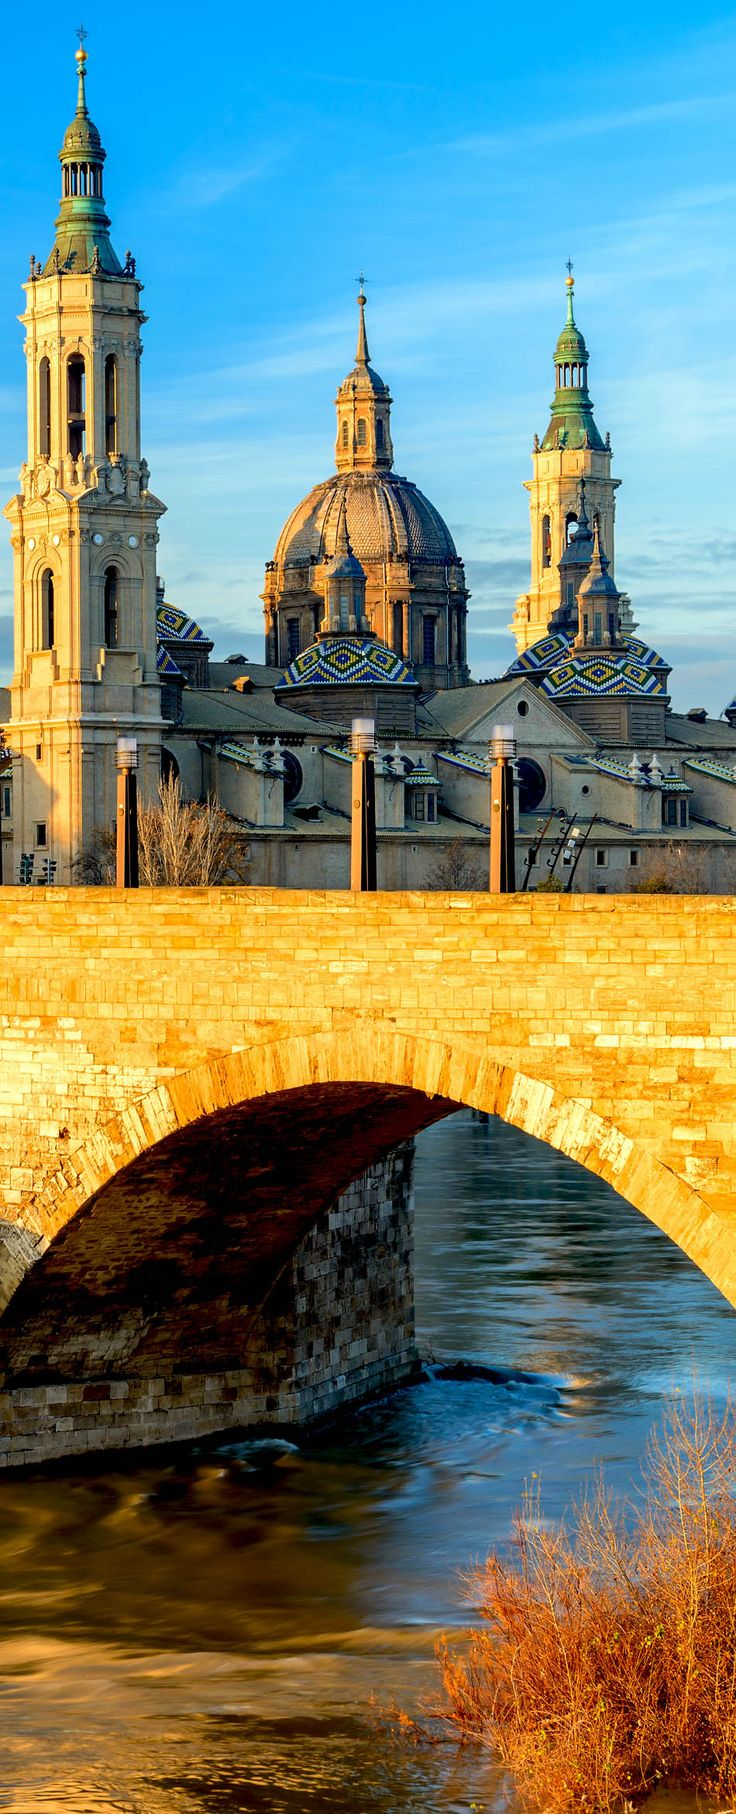 View of Basilica Pilar in Zaragoza, Spain, a Roman Catholic church which supposedly is the first church placed in Mary's name | 24 Reasons Why Spain Must Be on Your Bucket List.